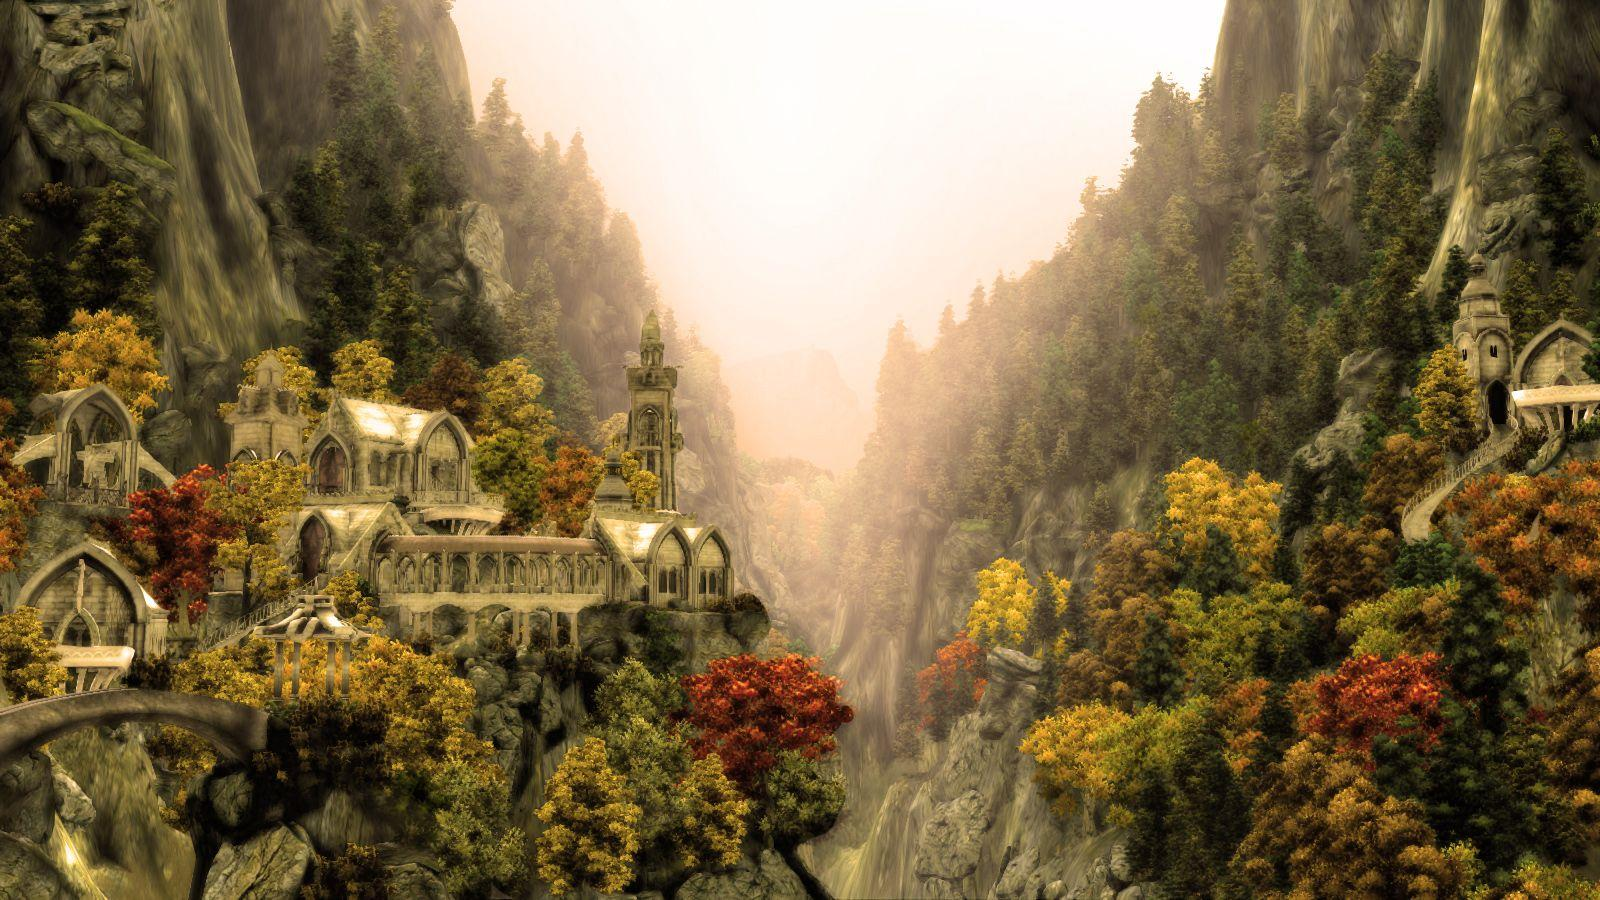 rivendell wallpaper - photo #1